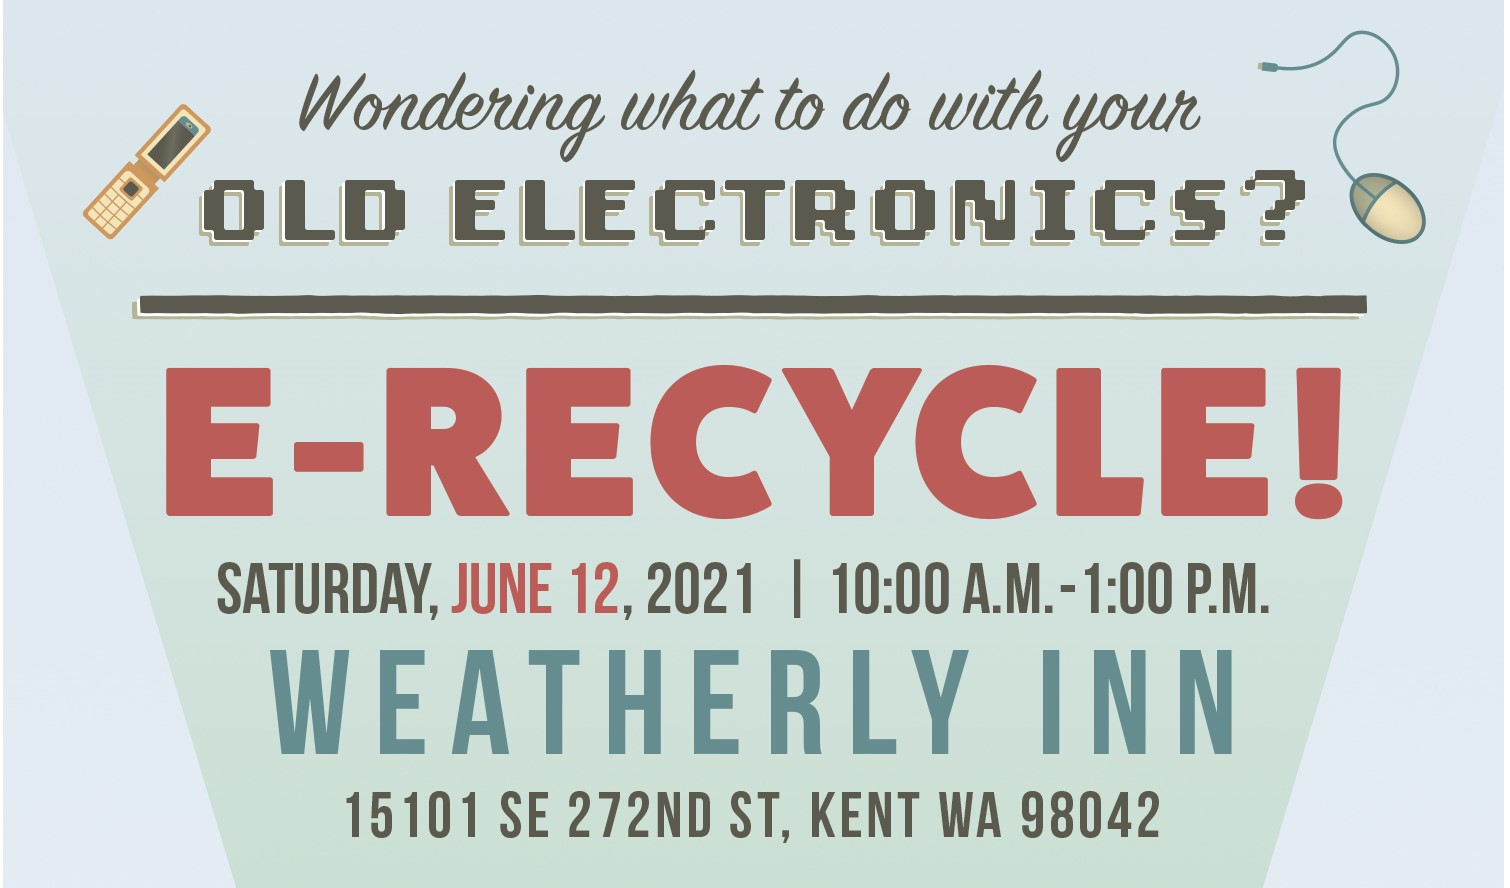 Kent_E-Recycle2021_1_2 page flyer